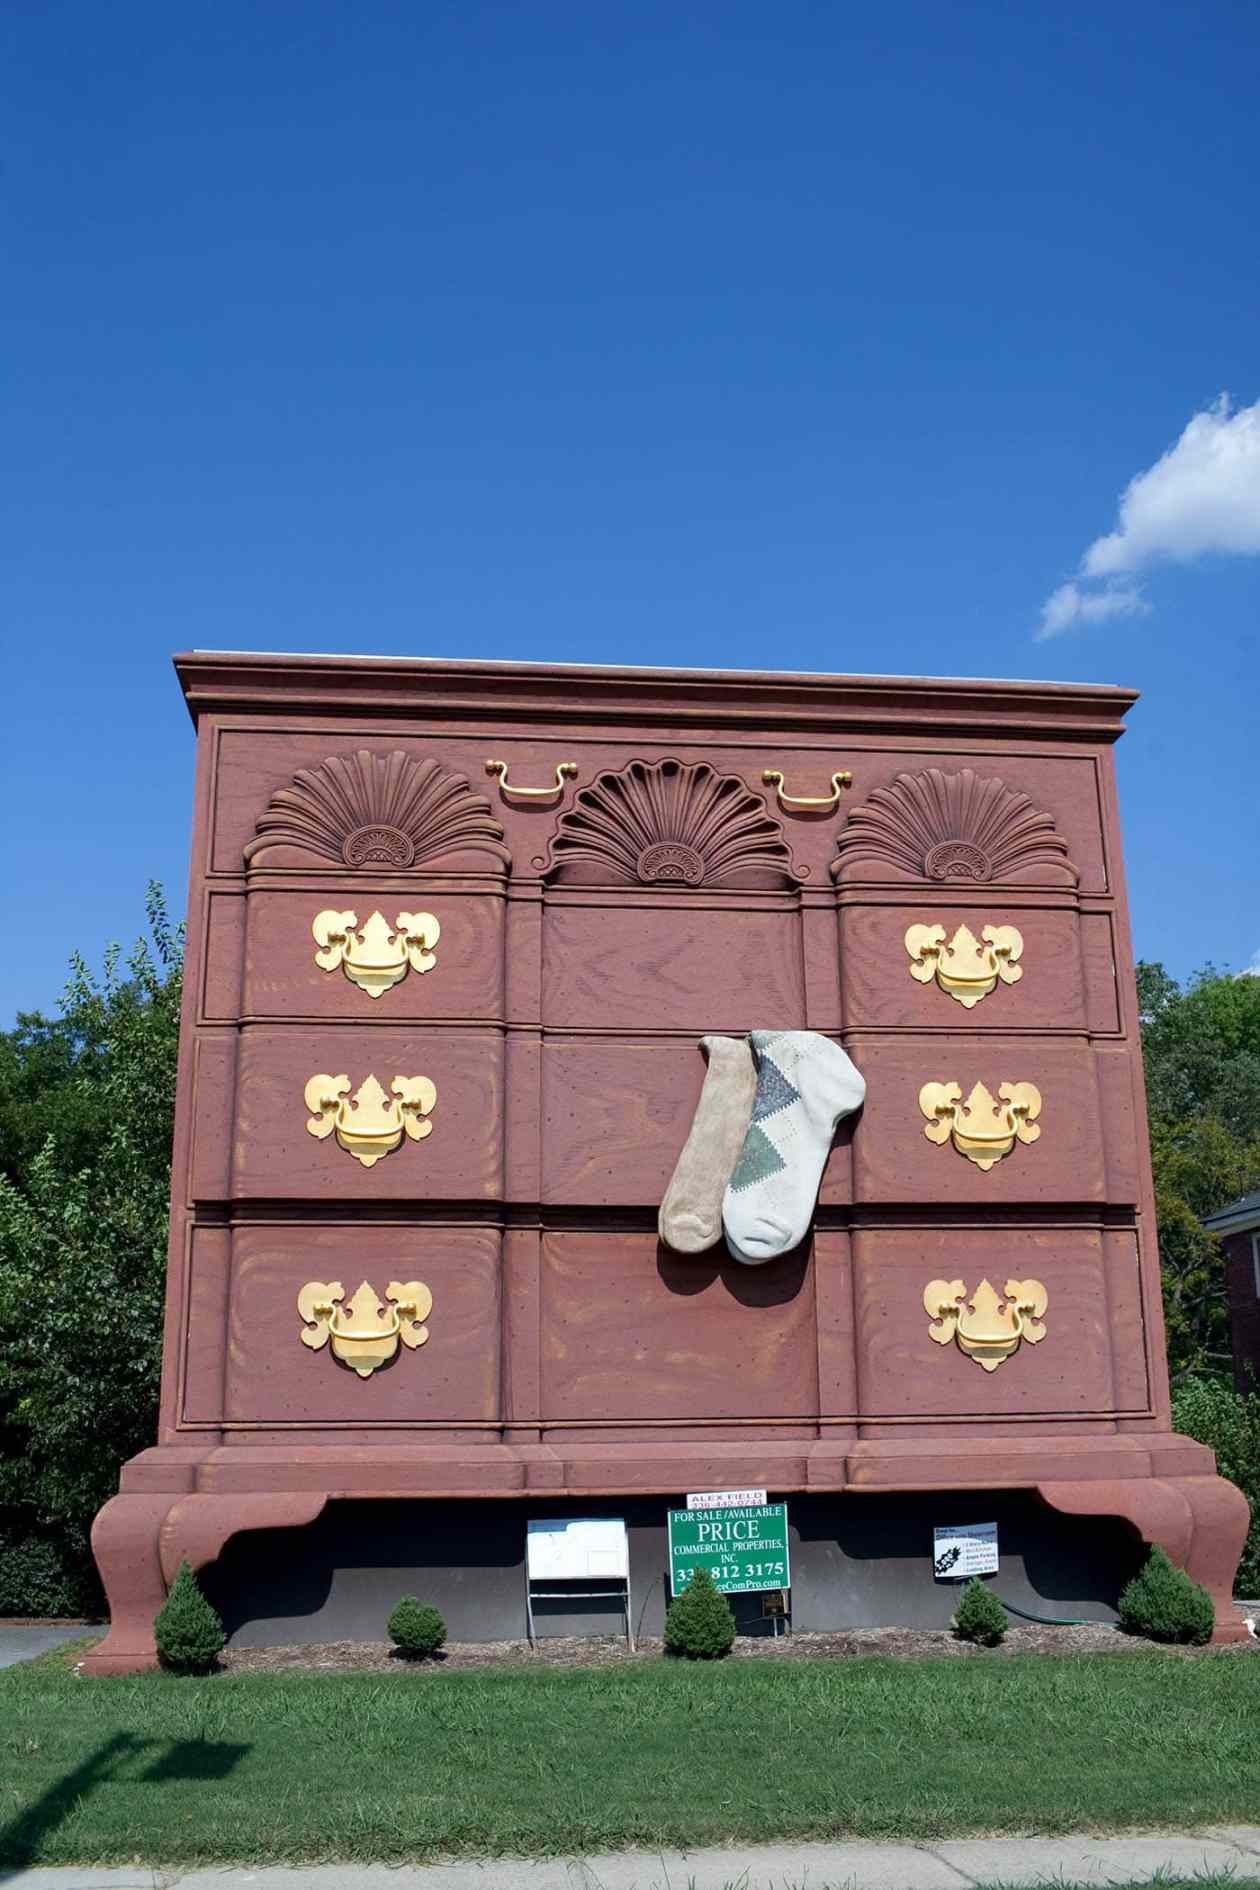 World s largest chest of drawers in high point north carolina